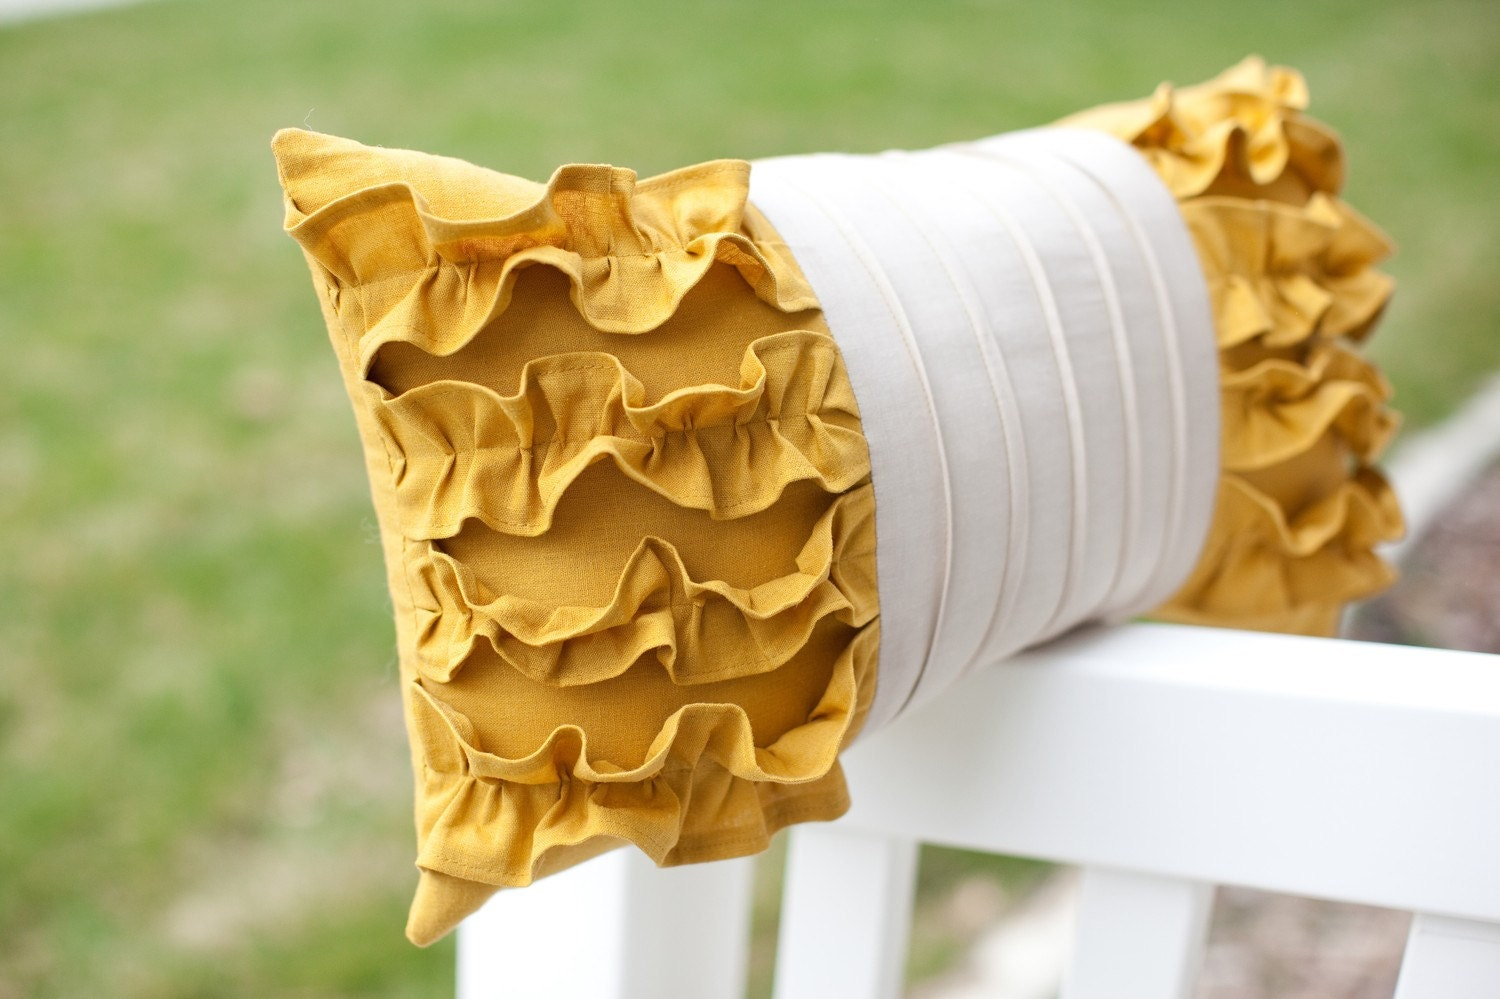 RESERVED for ruffhouseart 3 Side Ruffles Pillows in Mustard Yellow/Light Gray Linen 3 mustard rose pillows on gray cotton